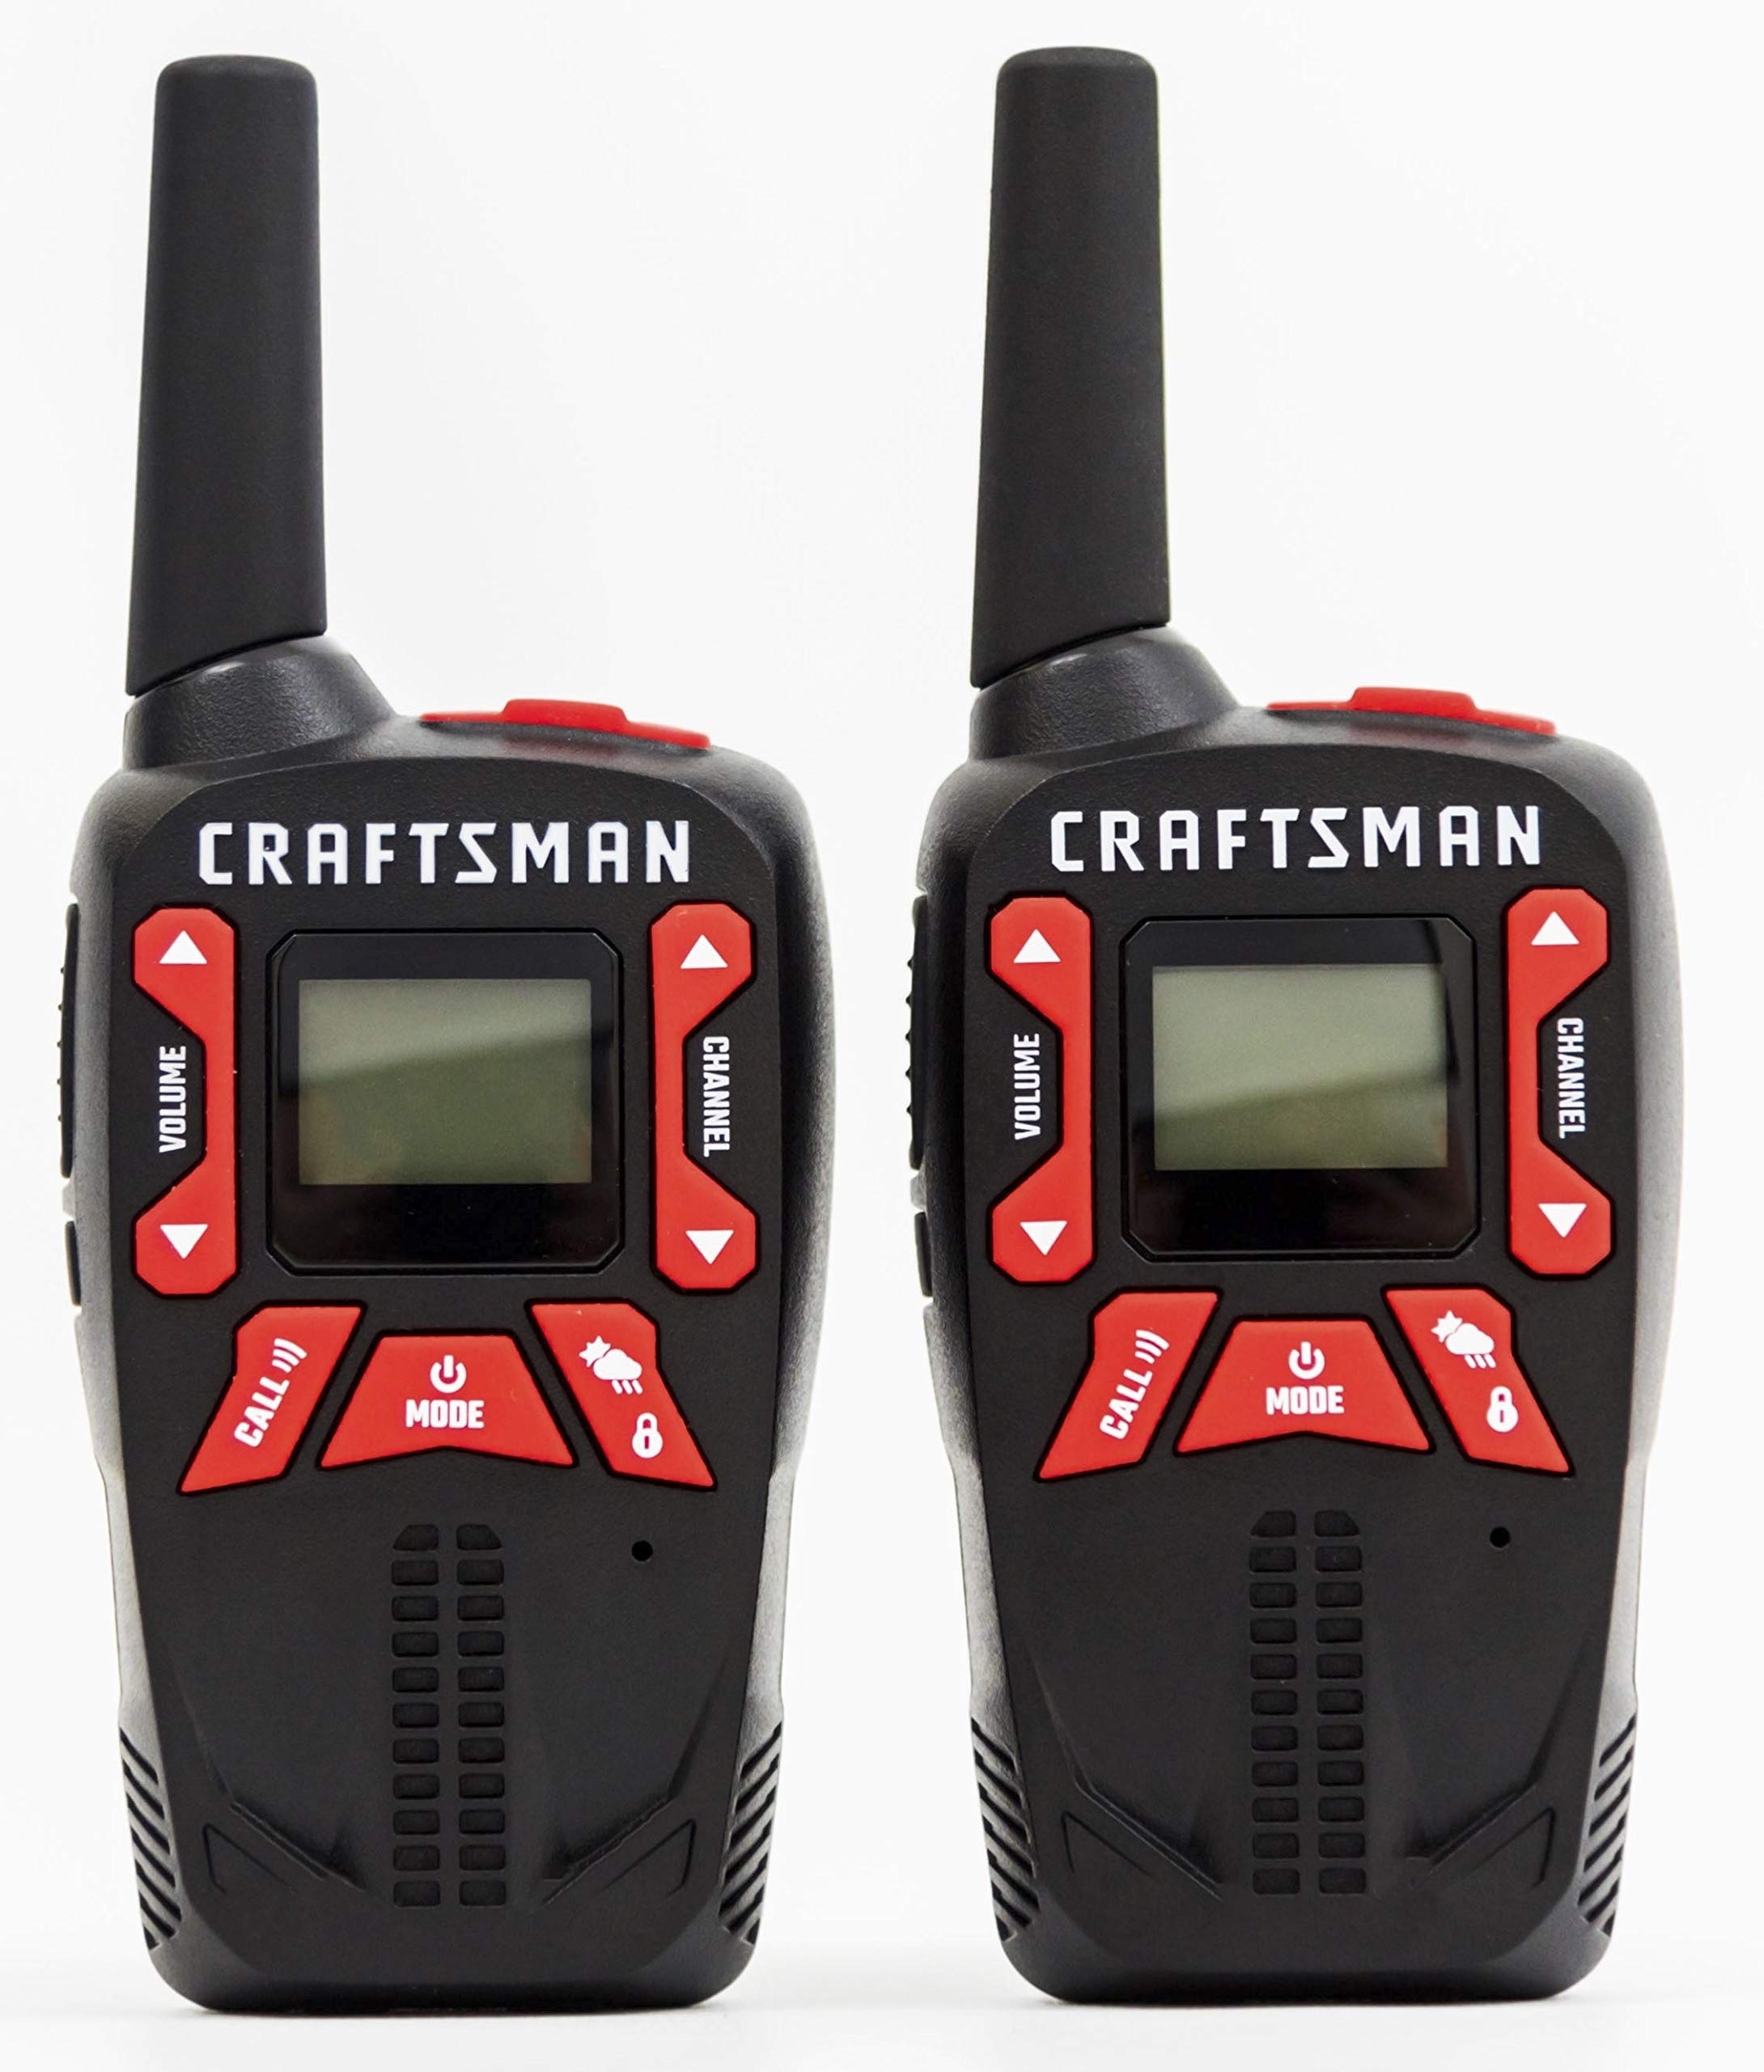 Craftsman CMXZRAZF333 Walkie Talkies Two-Way Business Radios (Pair)